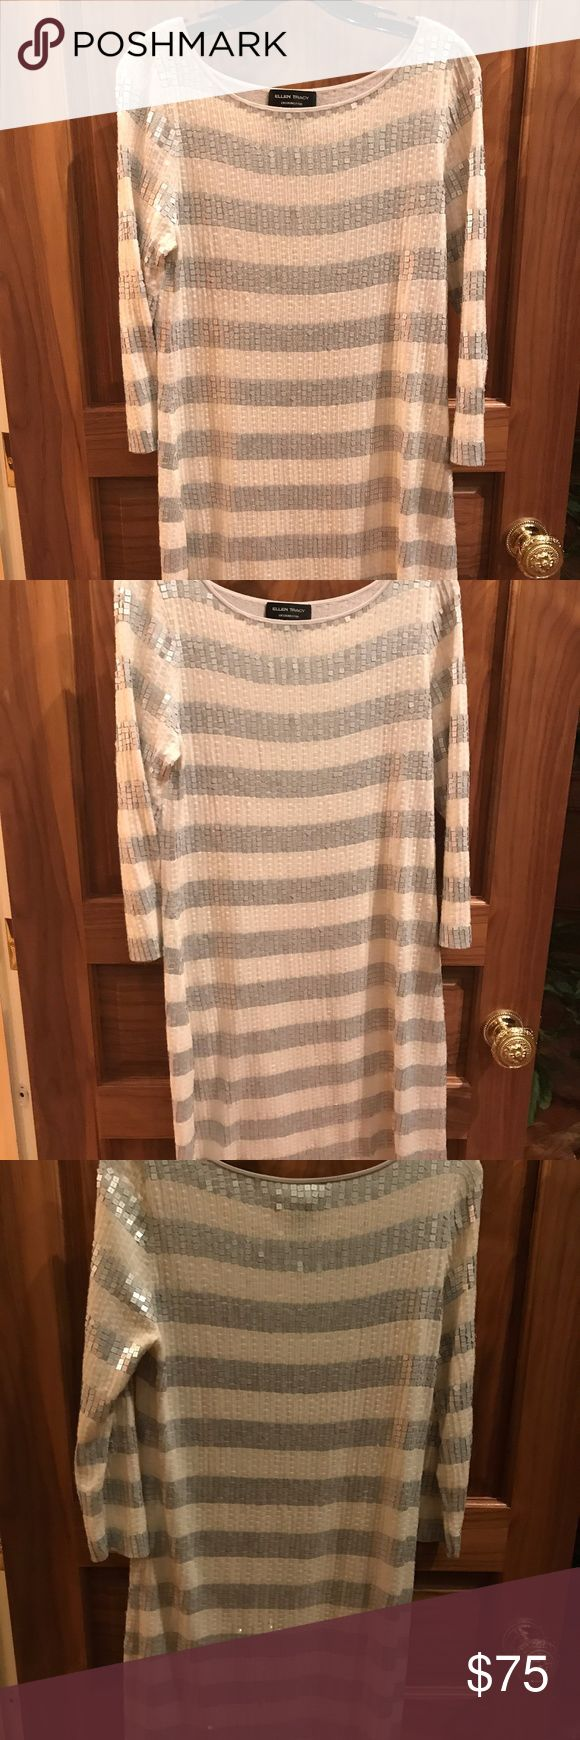 Striped Sequin Dress Sequin Dress striped cream and silver  Three quarter sleeves - barely worn - light and very comfortable wear Ellen Tracy Dresses Long Sleeve